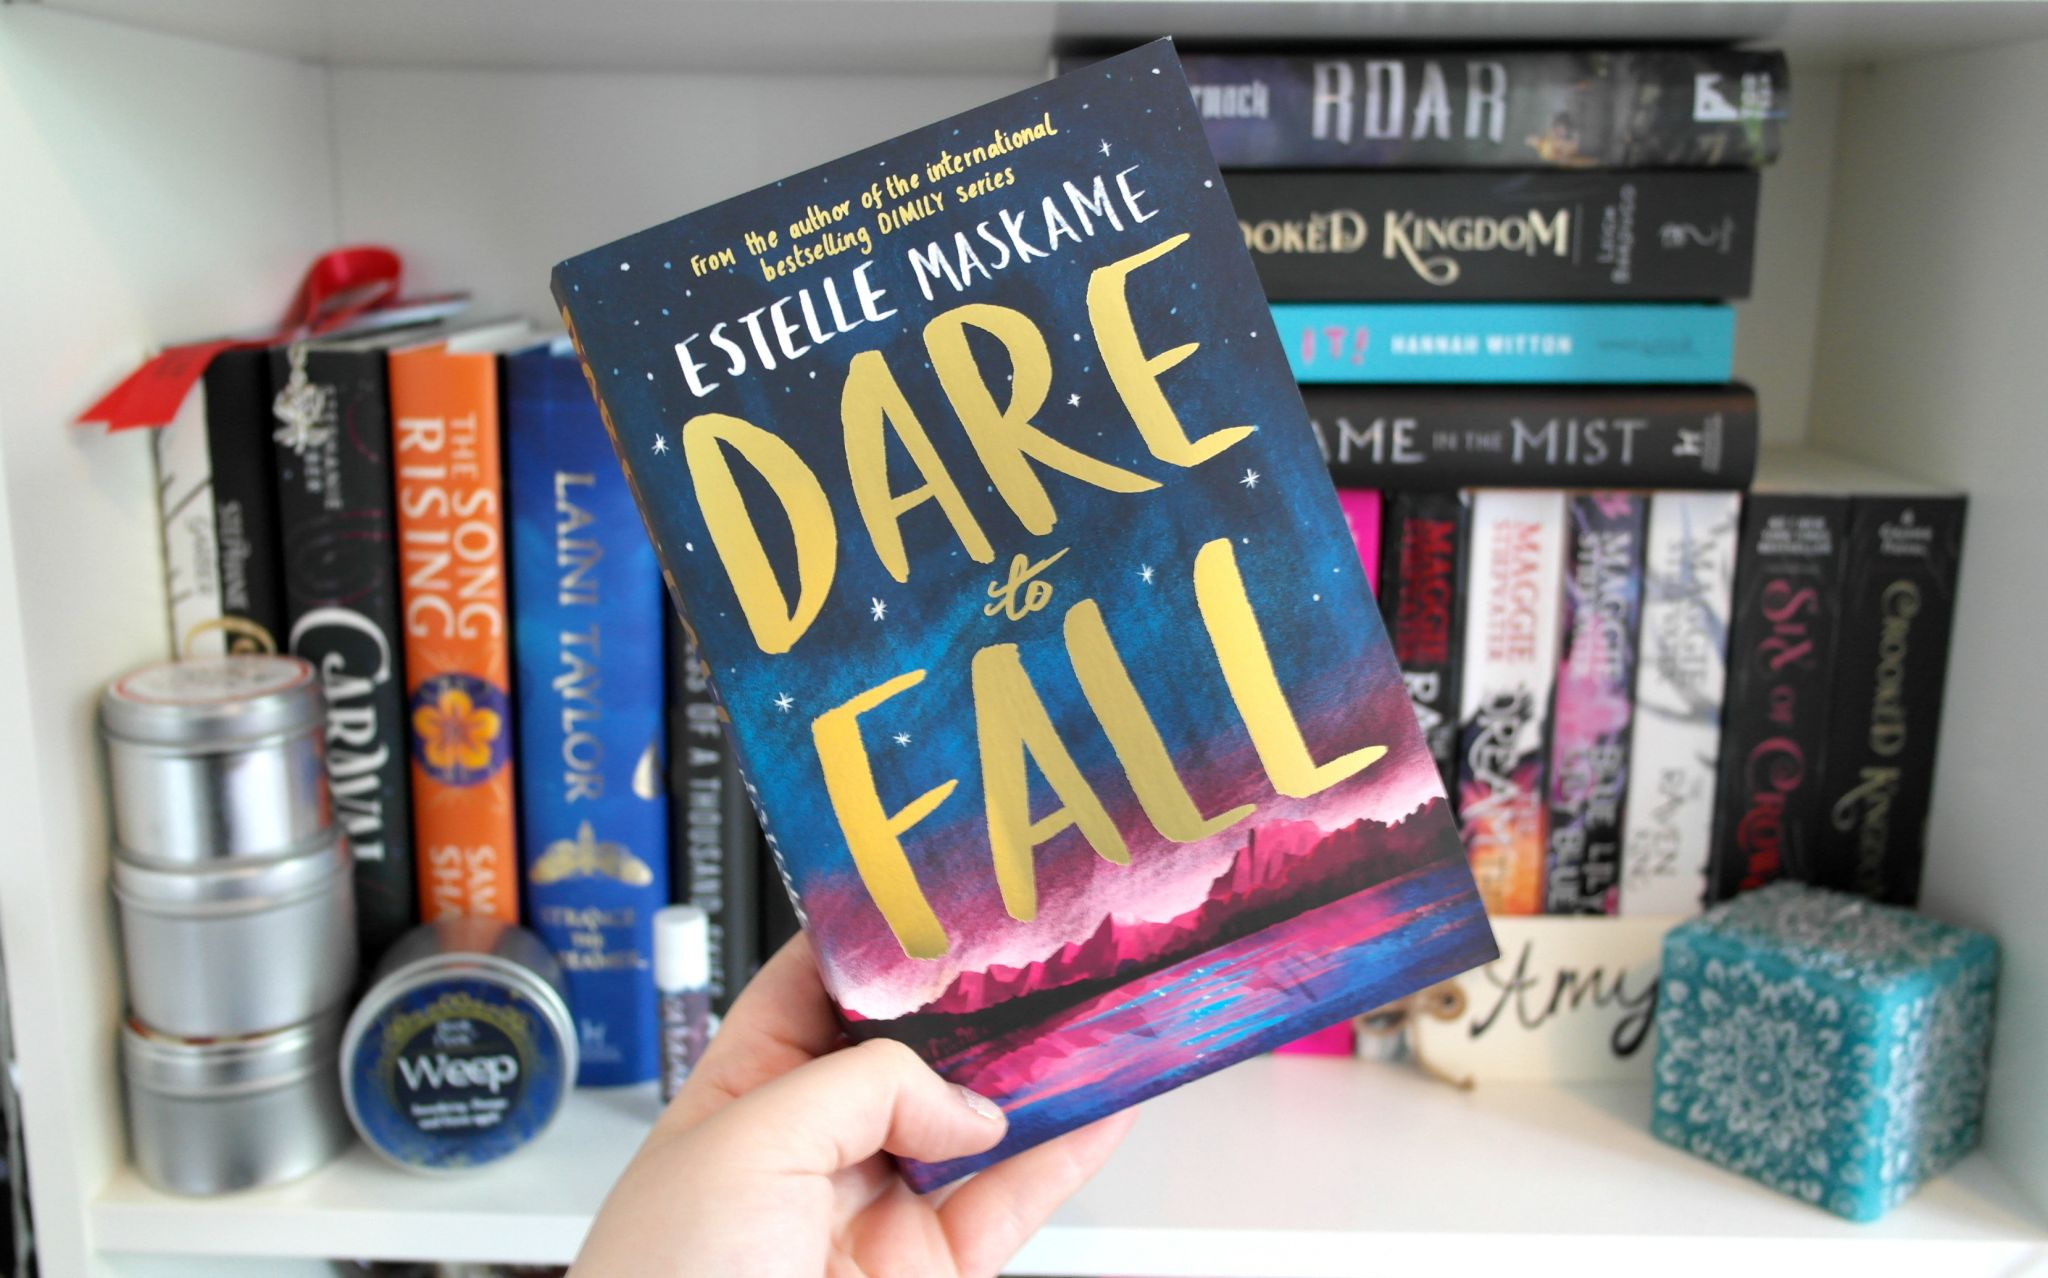 Review: Dare to Fall by Estelle Maskame